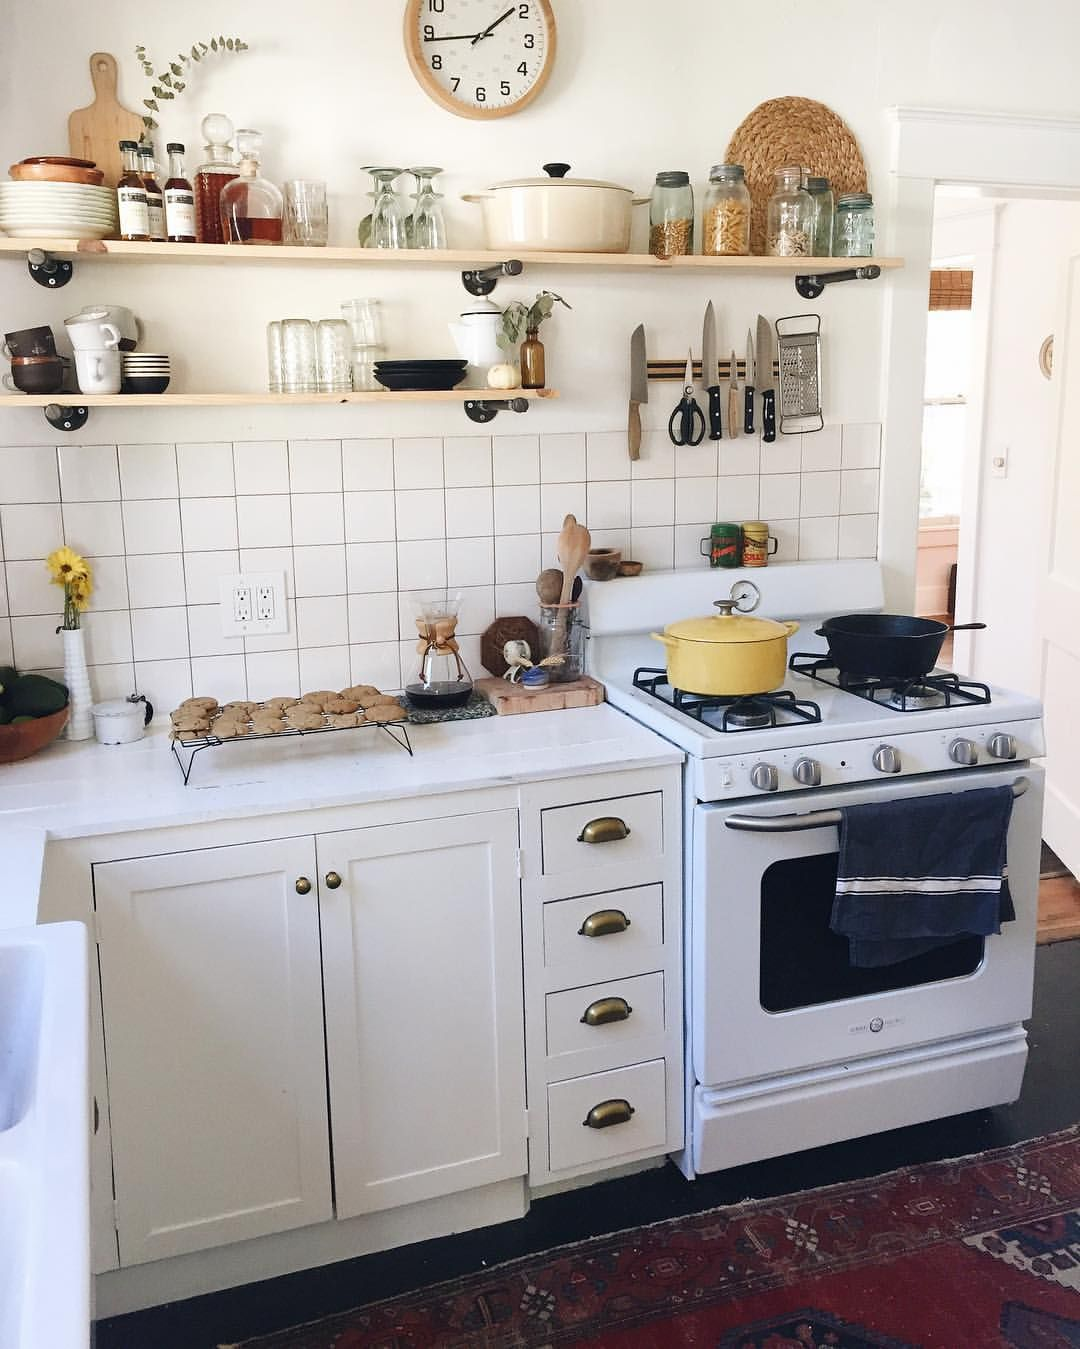 Vintage-style GE stove, cabinets, hardware. But not square tile ...